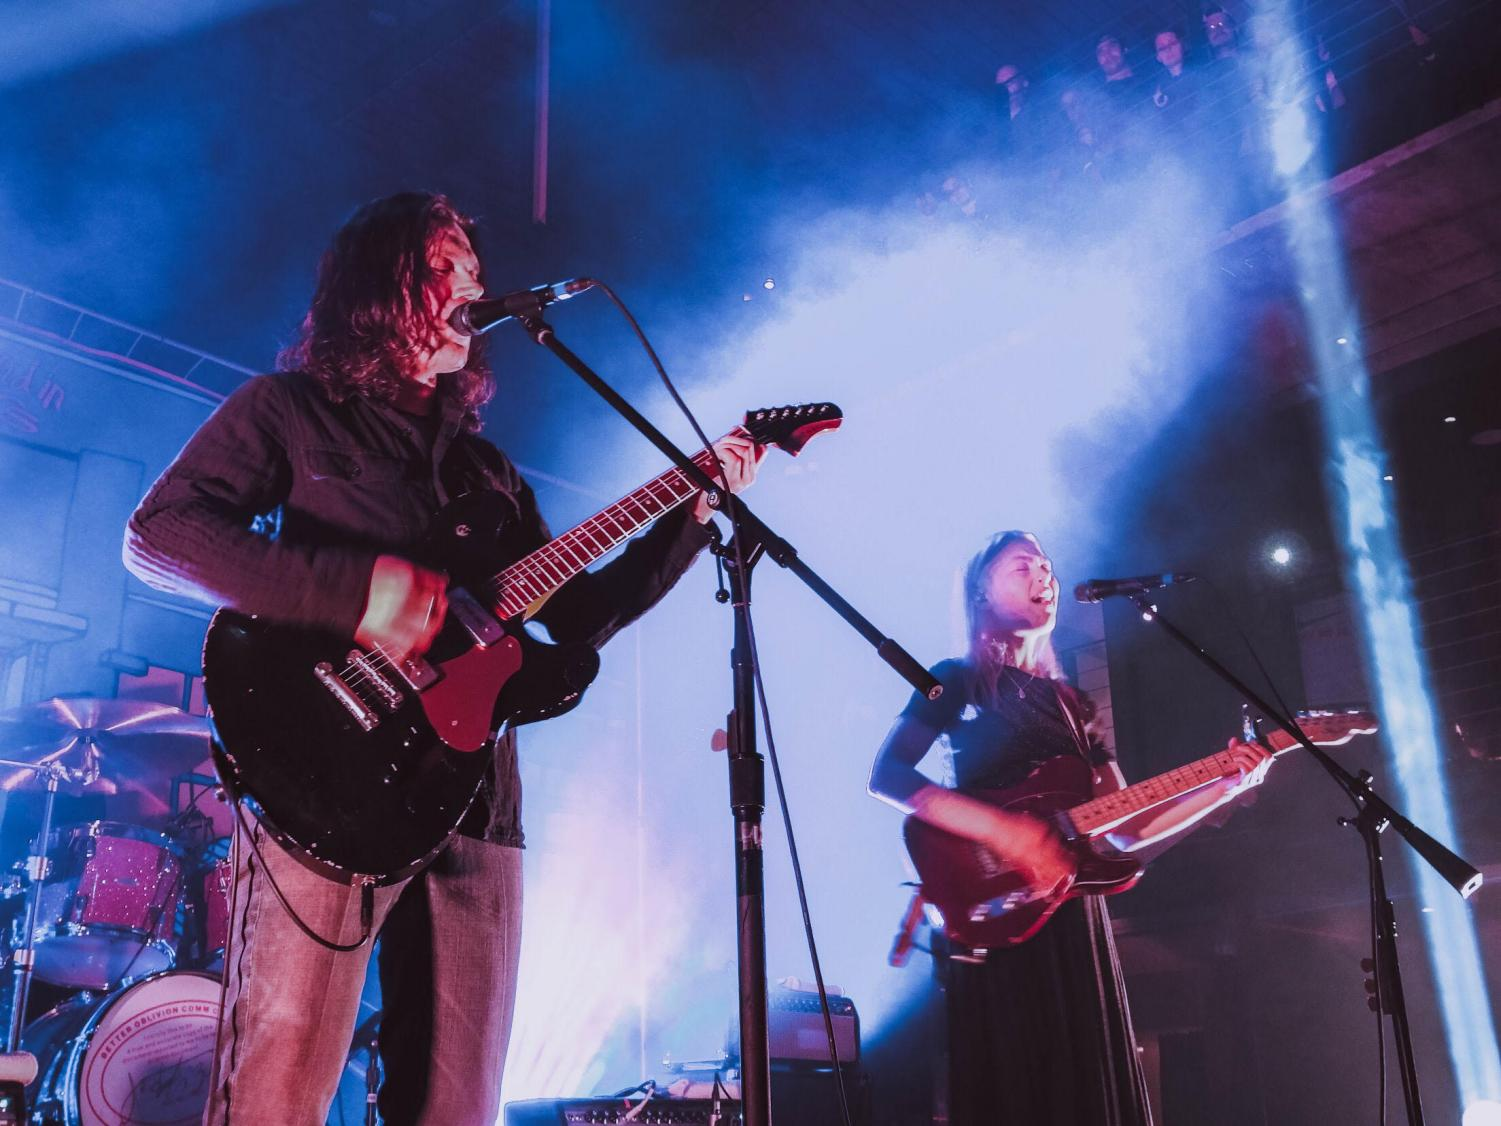 Phoebe Bridgers and Conor Oberst performing in San Diego on March 10.